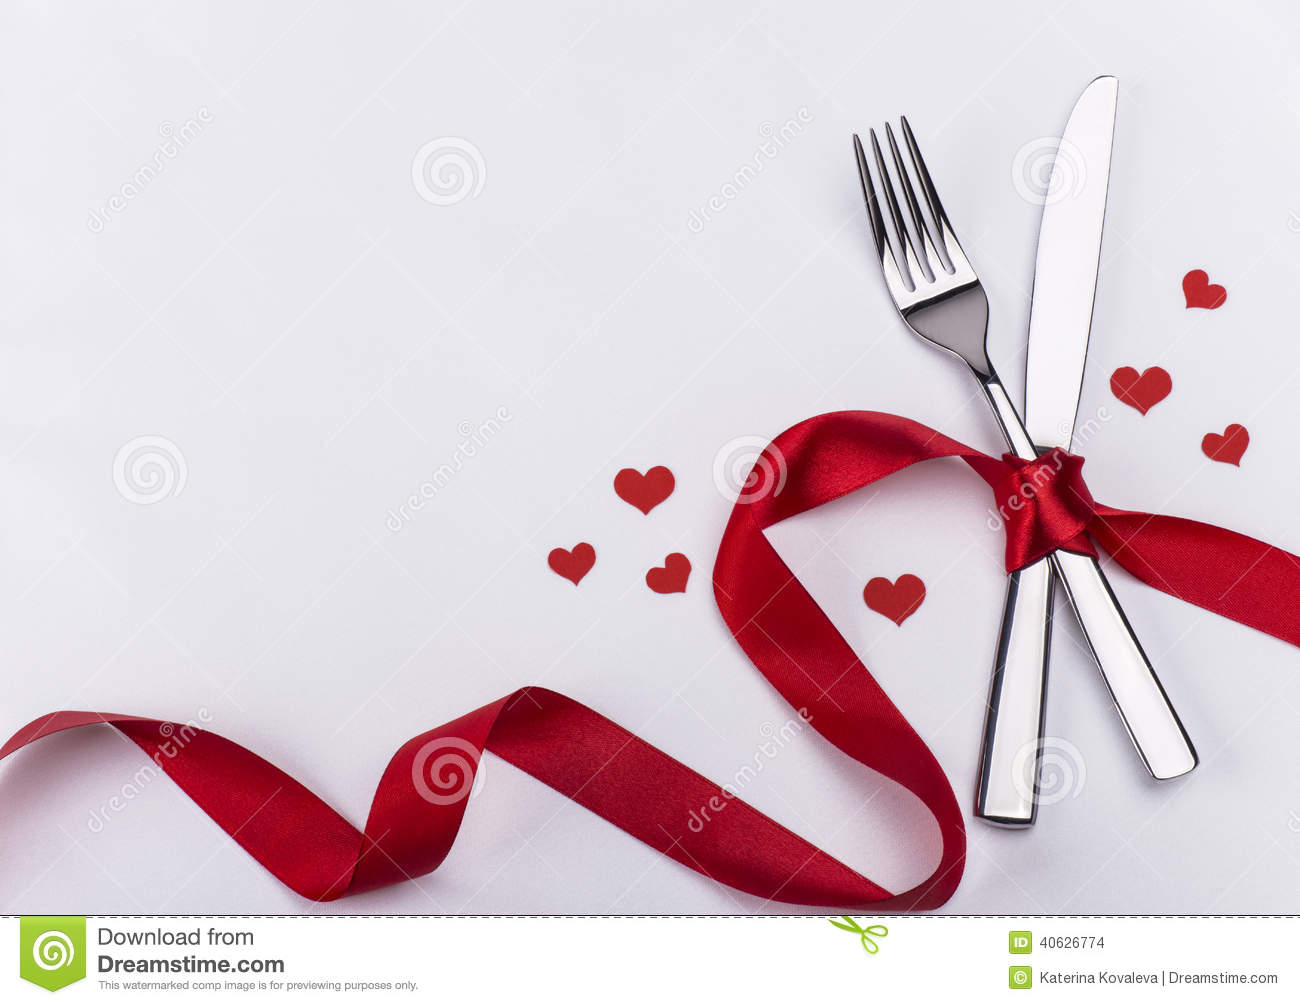 Fork And Knife For Wedding Celebration Background Stock Photo   Image